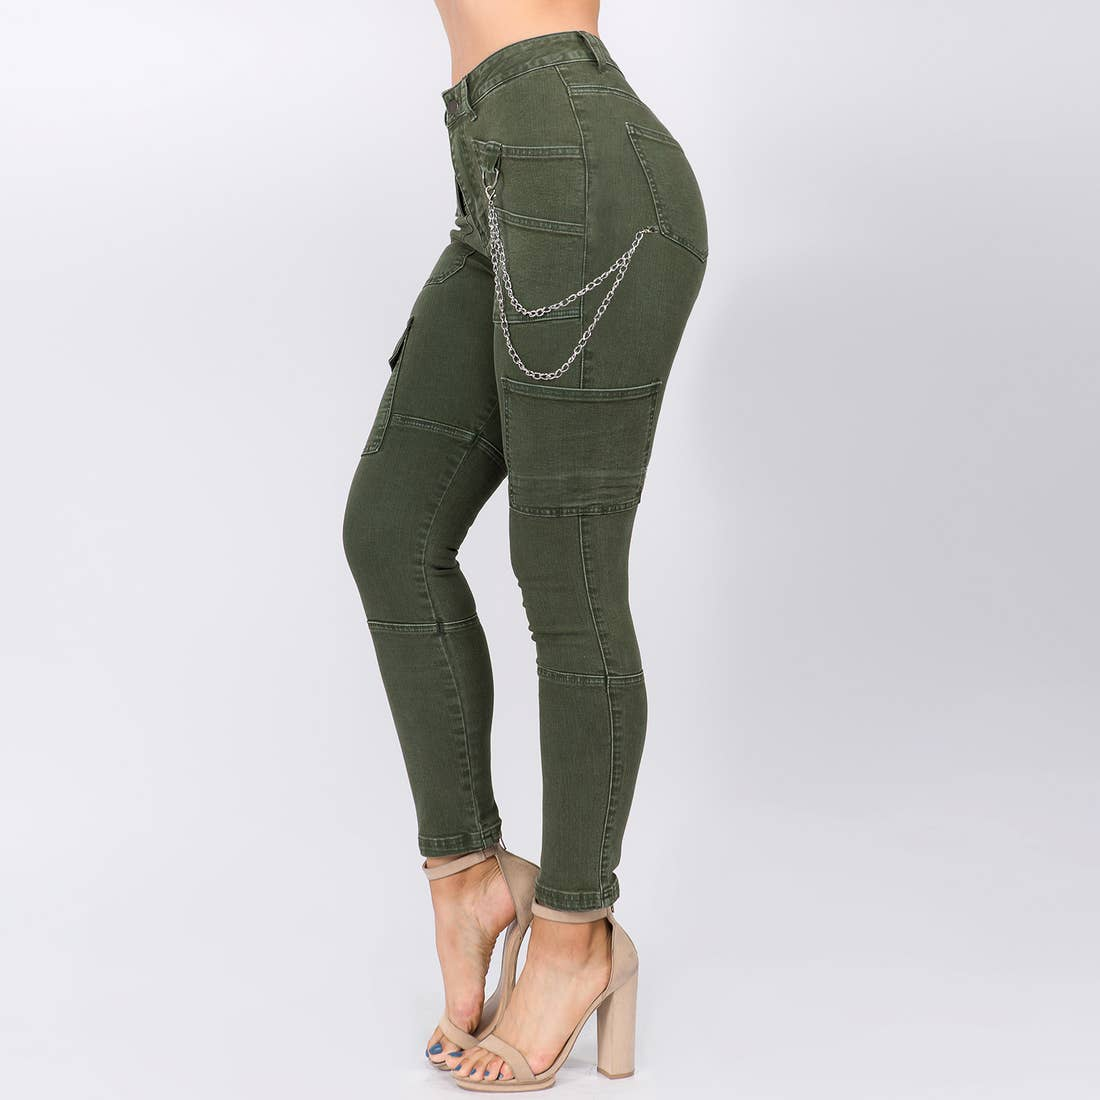 HIGH WAIST SKINNY PANTS WITH CHAINS